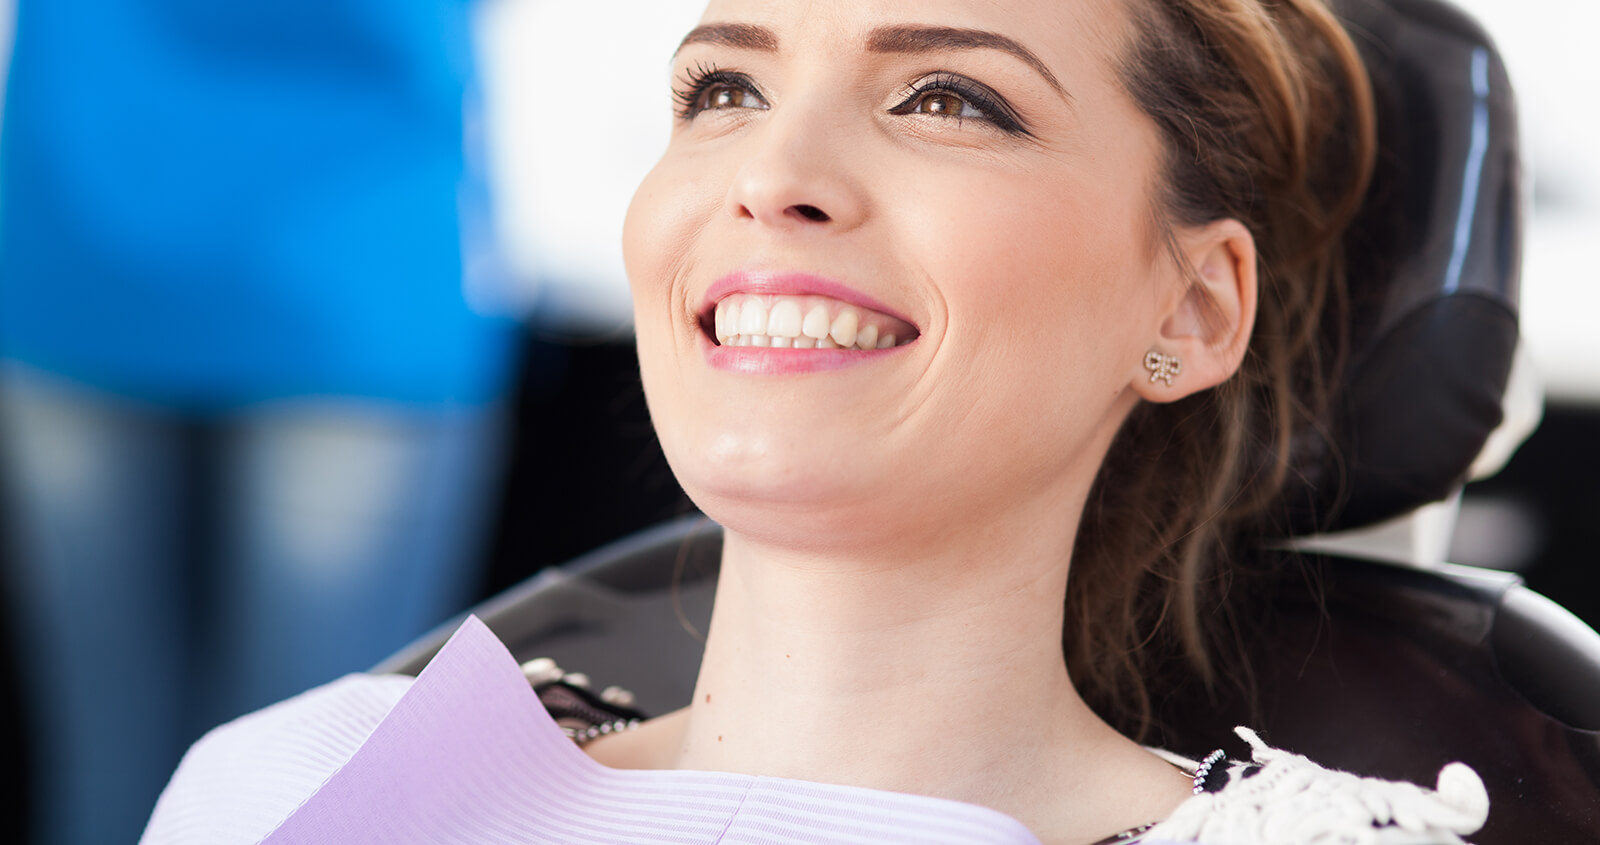 Porcelain Crowns Are Durable, Natural-looking Restorations in Walnut Creek, CA Area